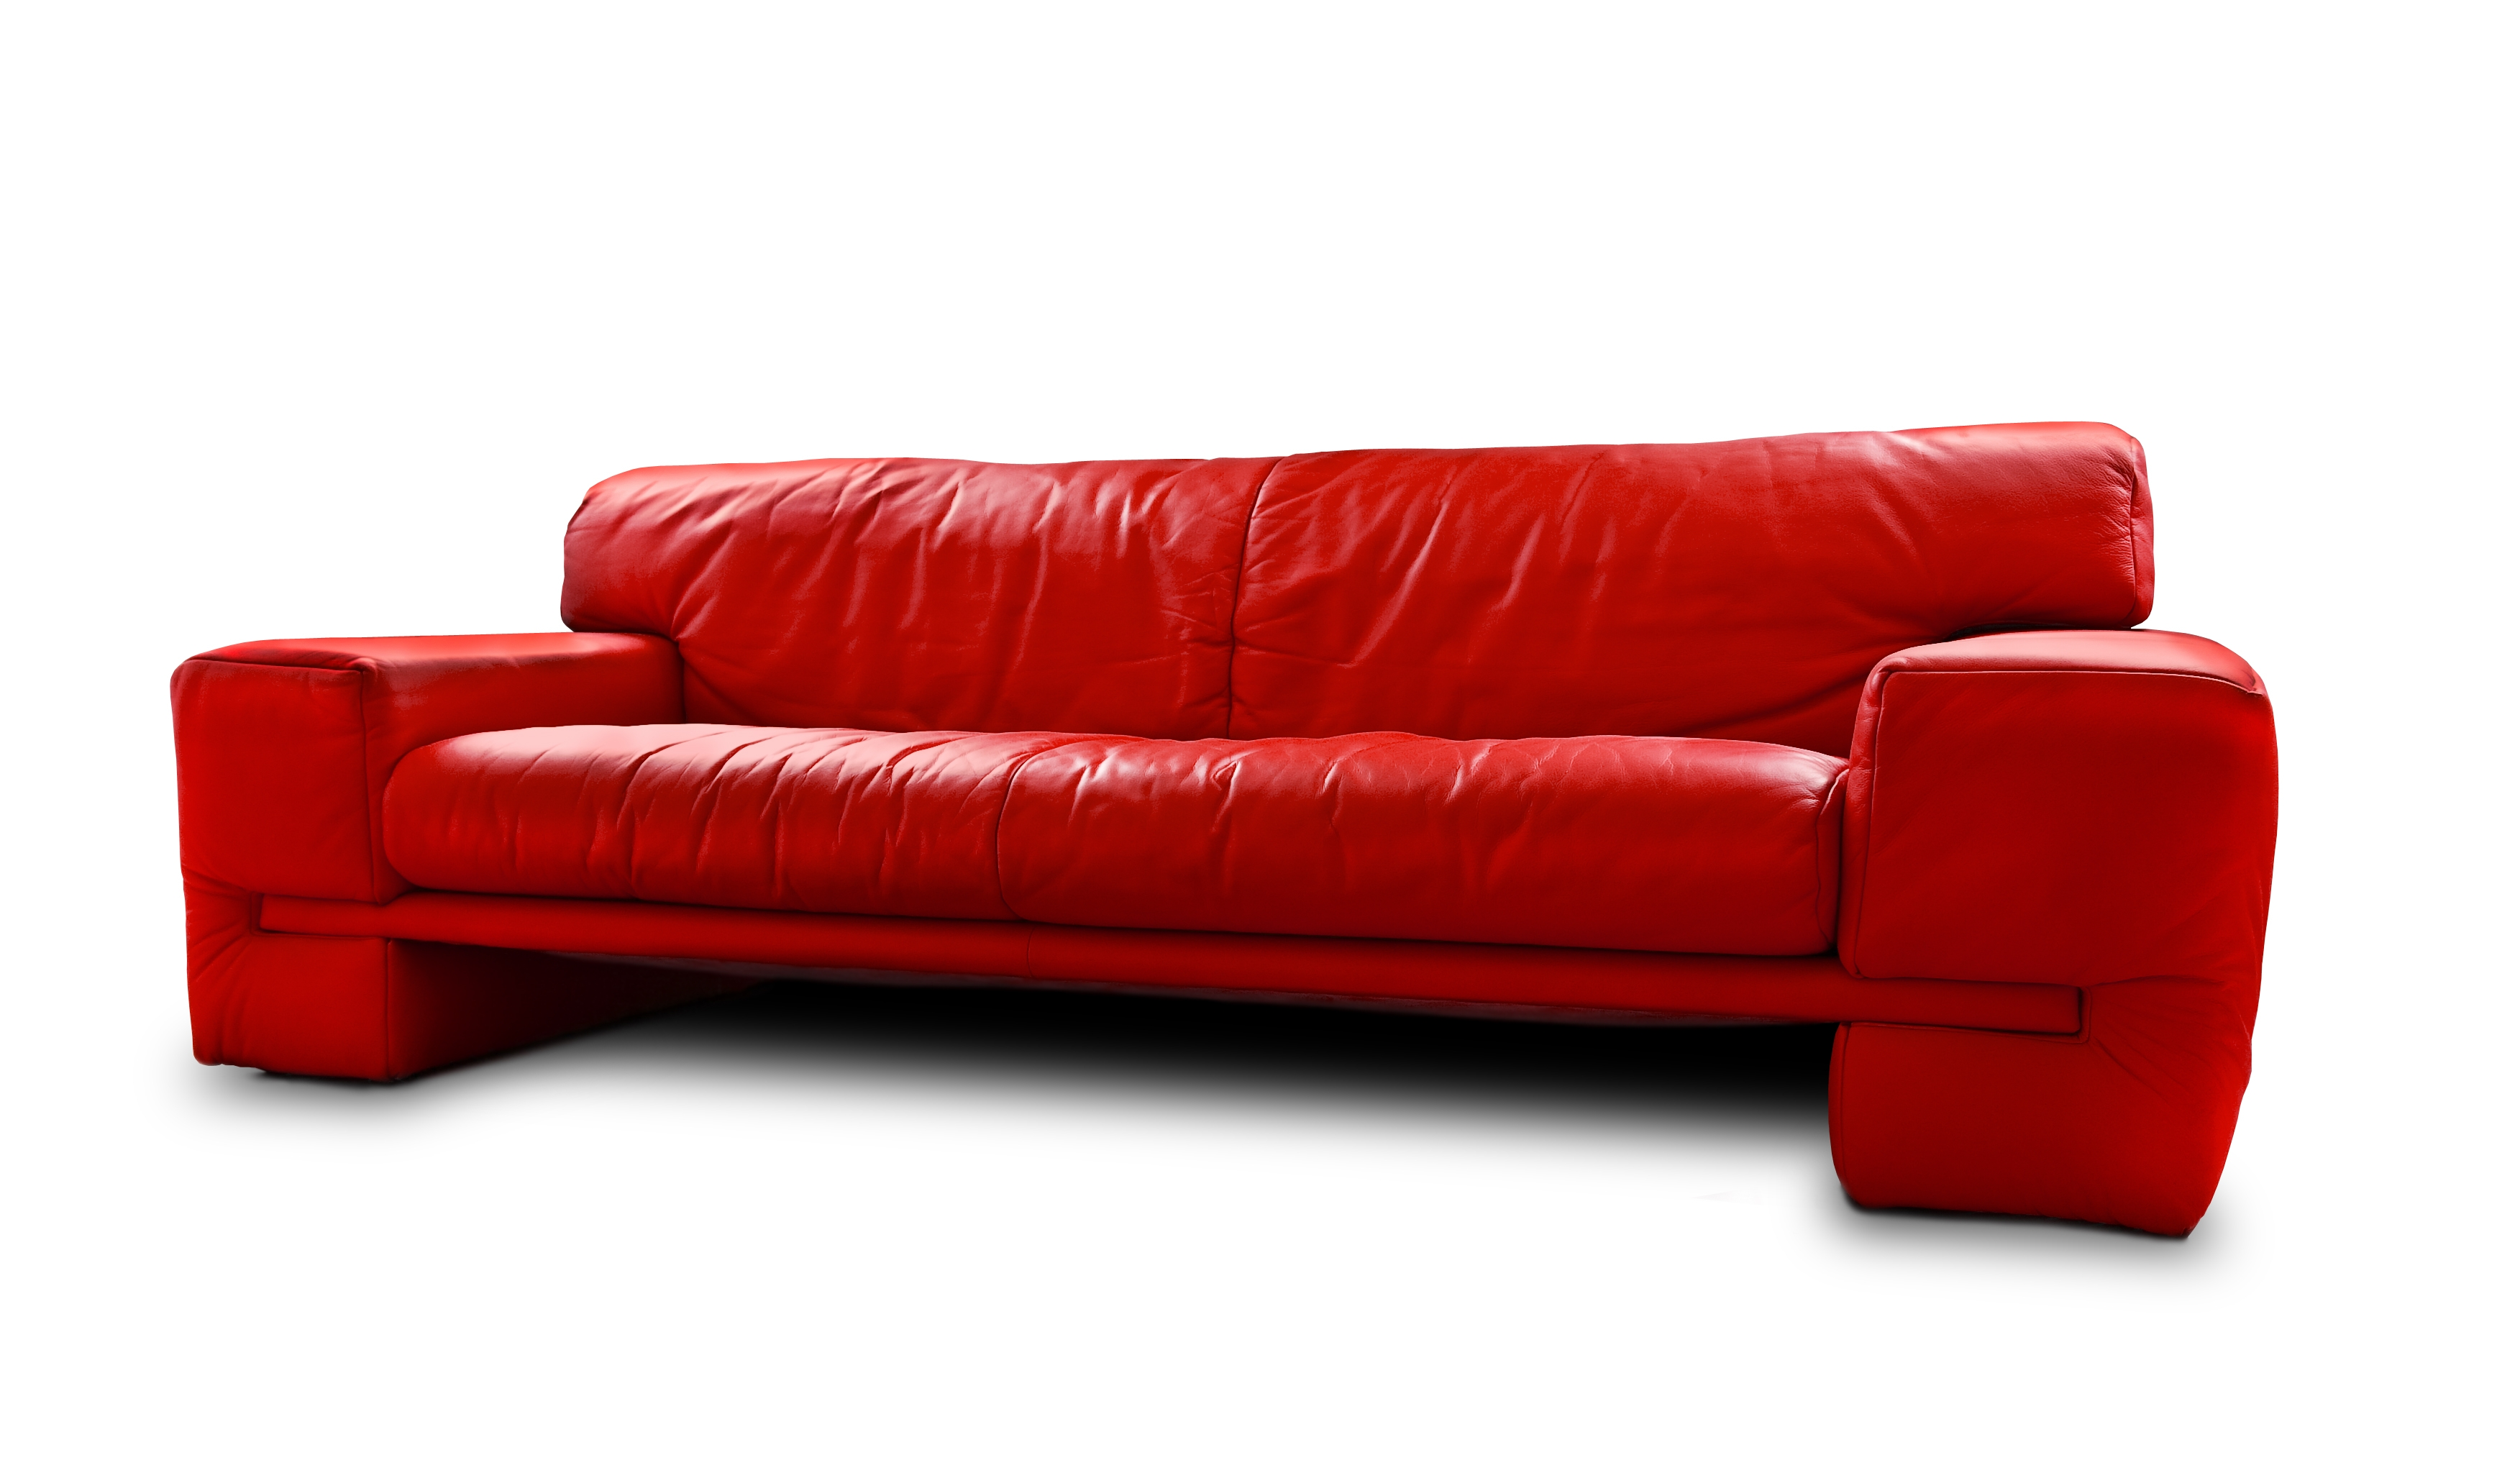 Cheap Red Couches With Regard To Red Sofas And Chairs (Image 5 of 15)